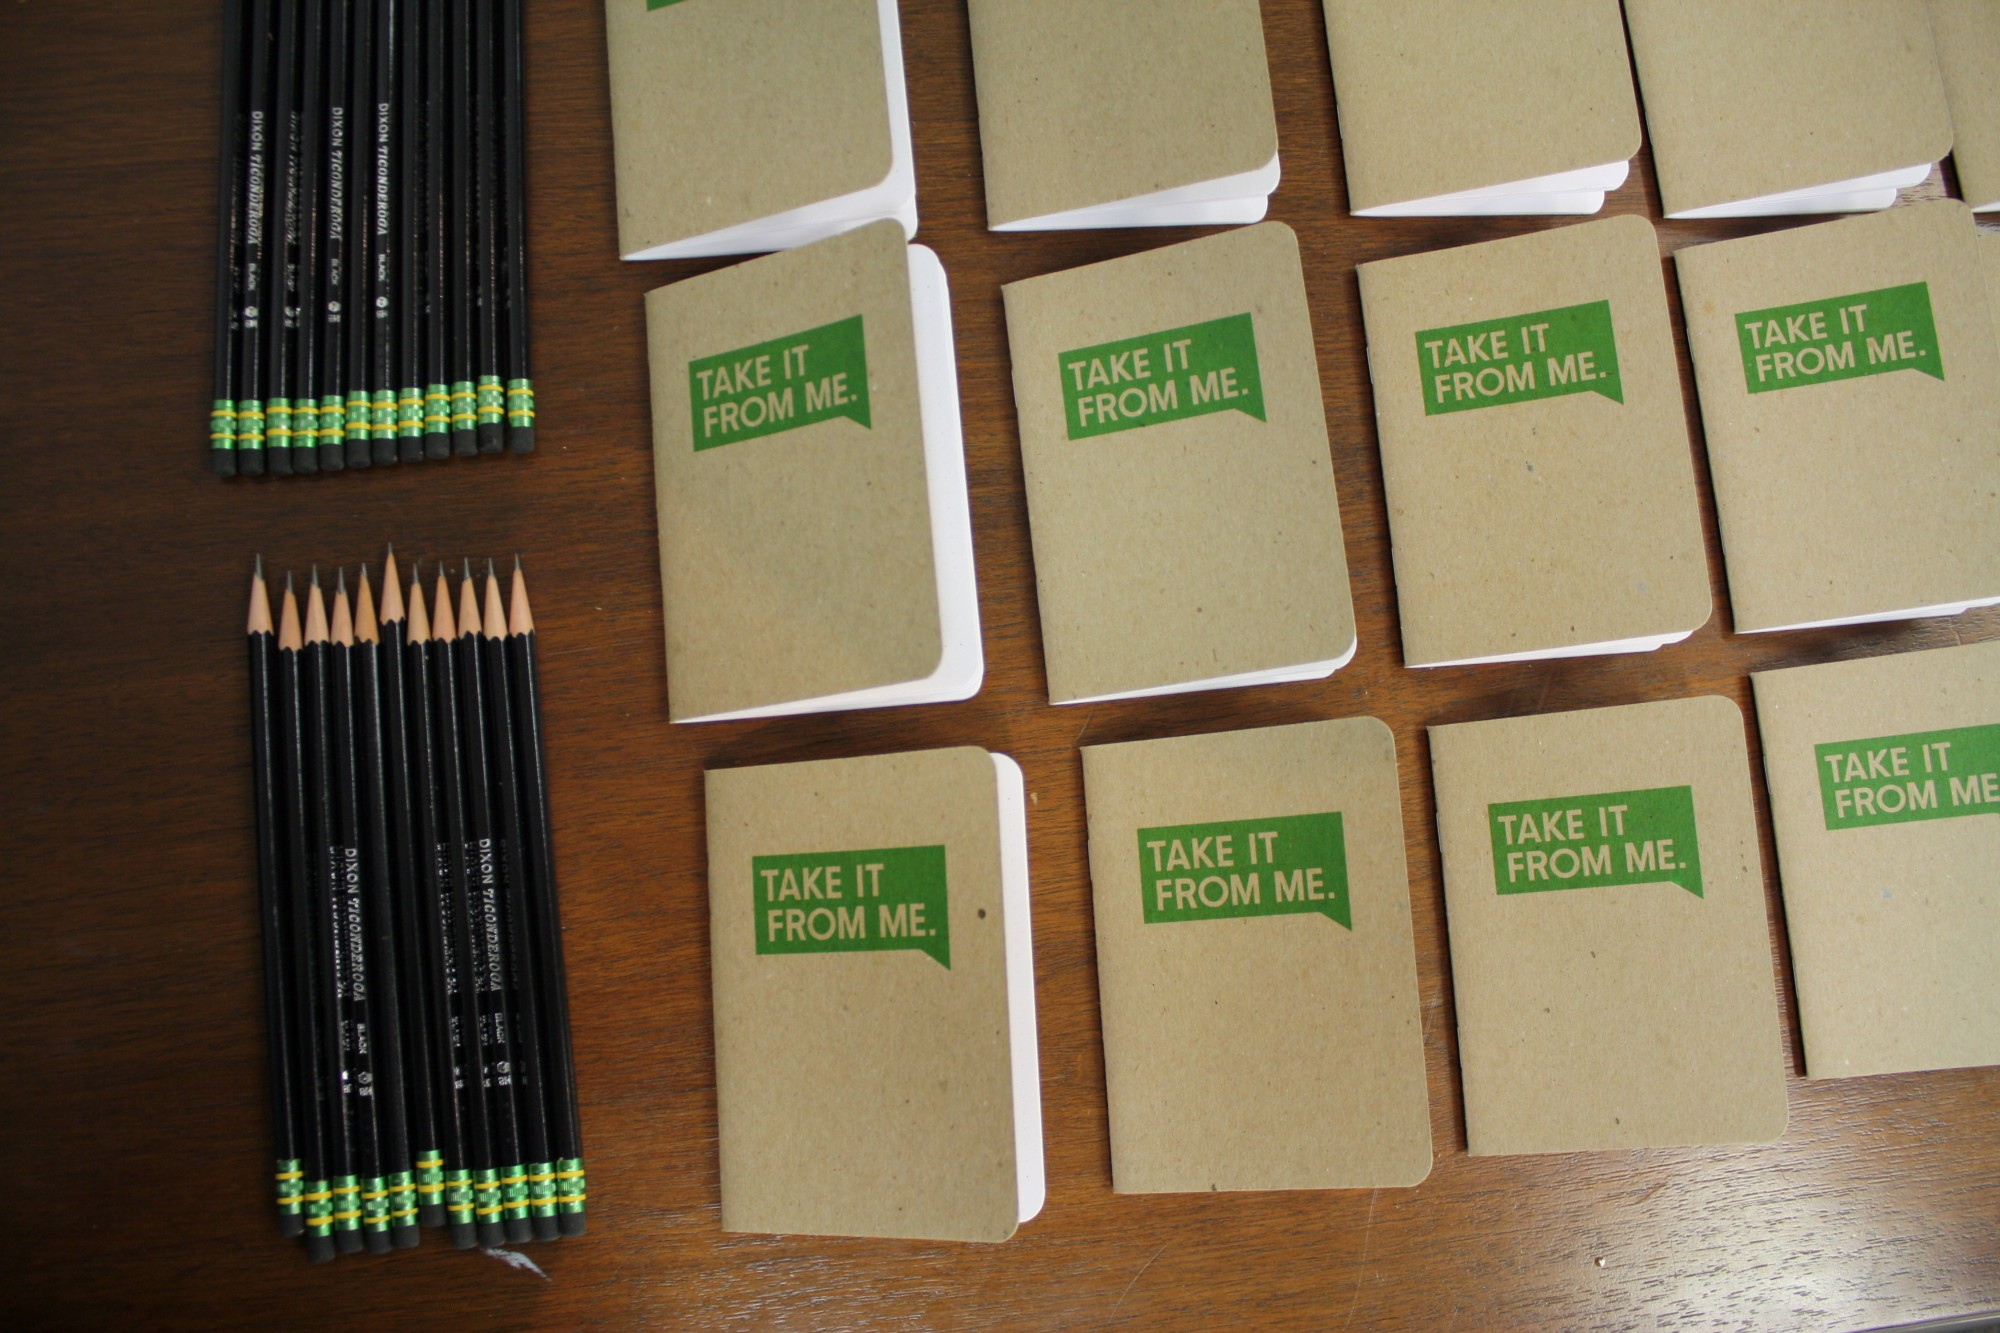 Participants receive Scout notebooks and pencils. Photo: Carly Hagins